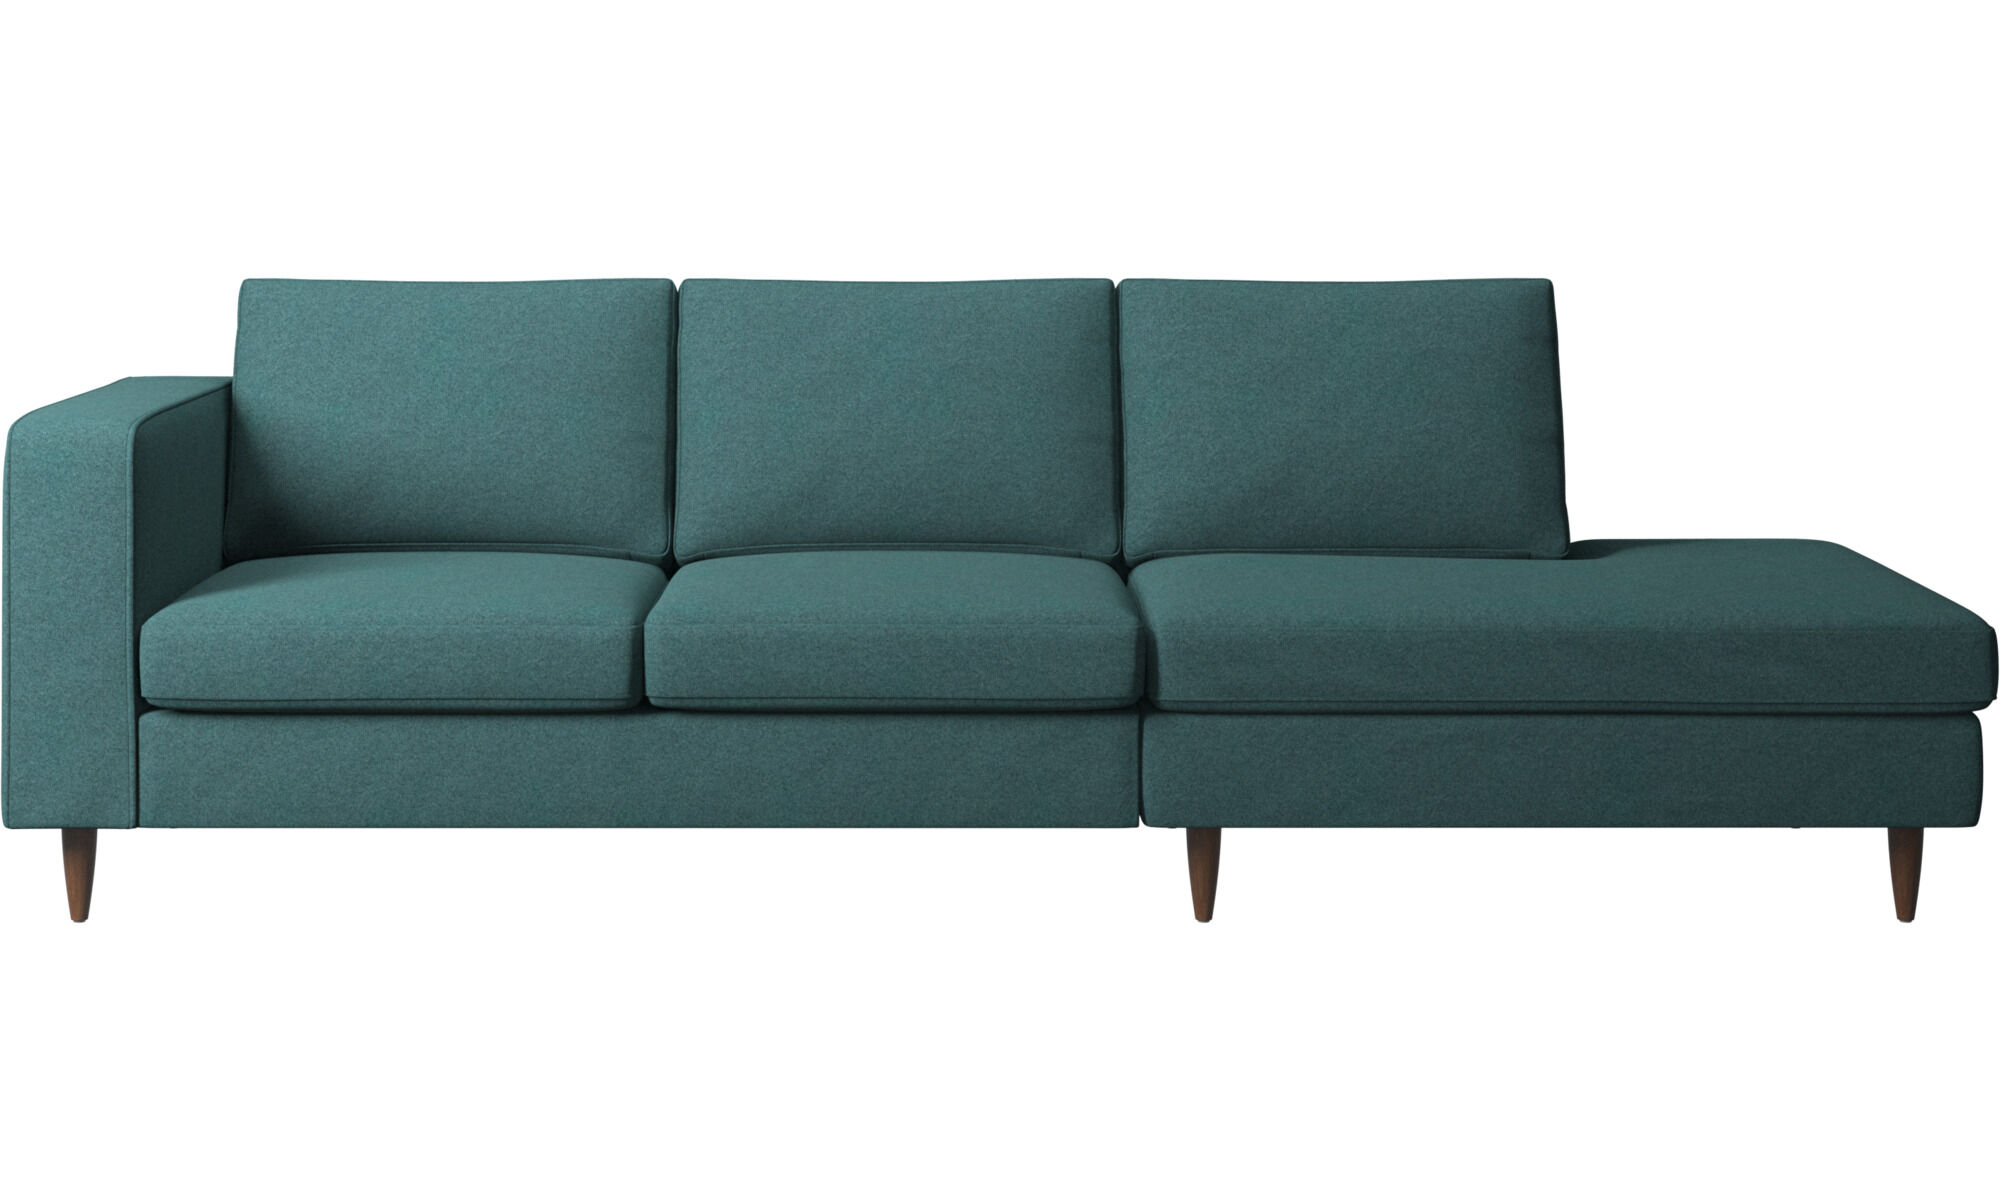 Sofa Foam Leeds Sofas With Open End Indivi Sofa With Lounging Unit Boconcept